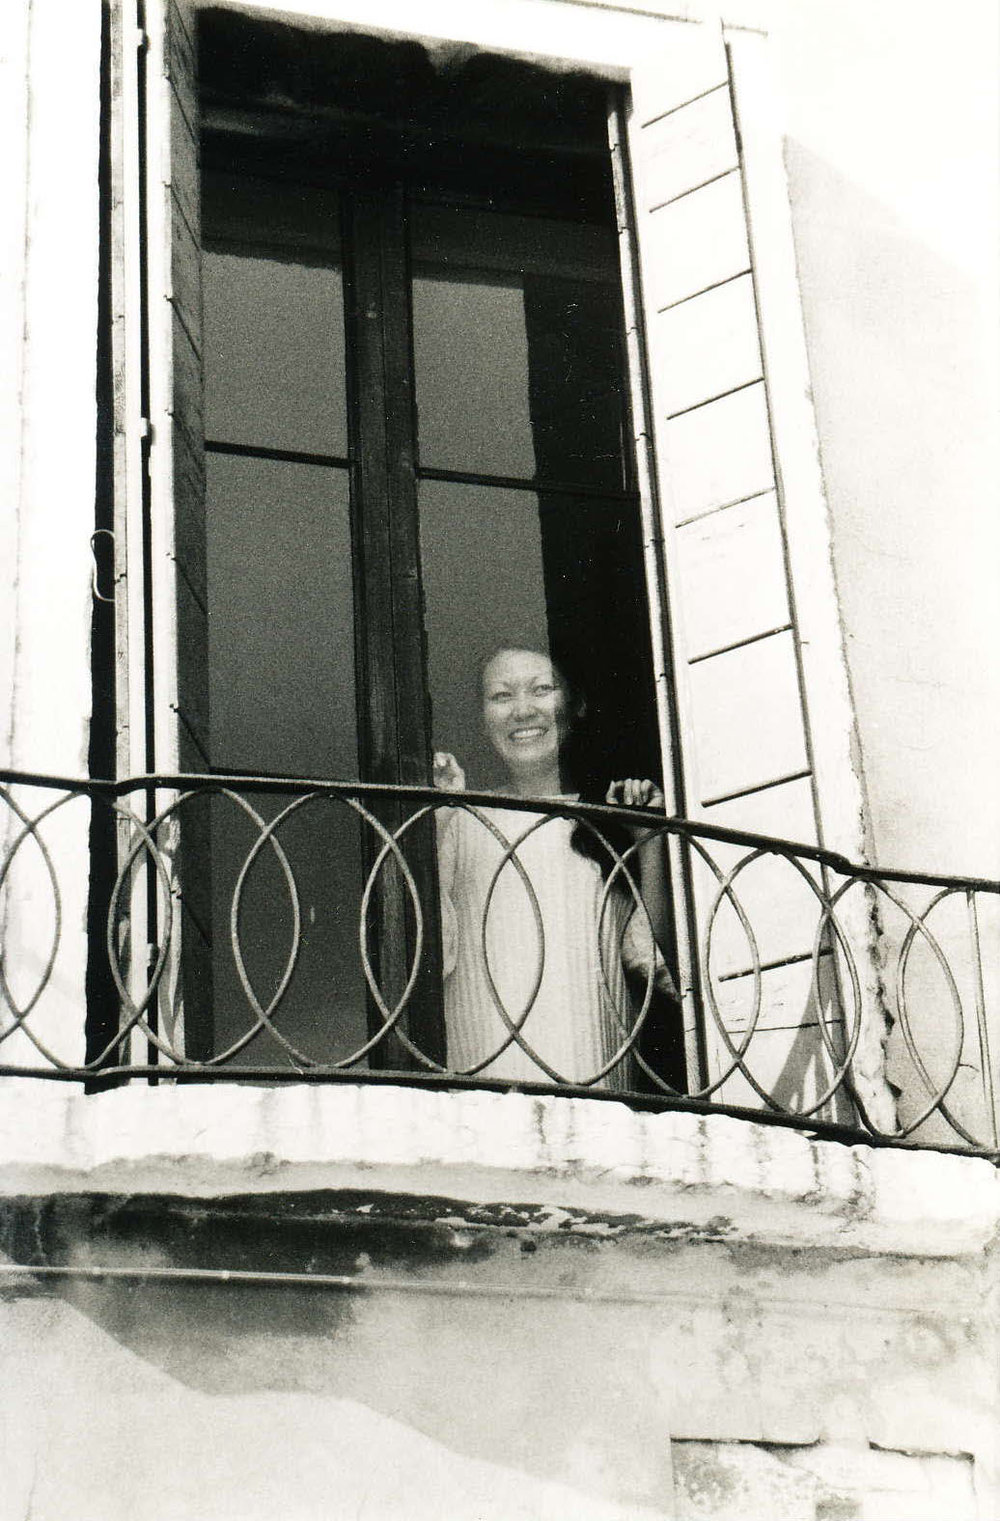 Graduate Student Adele Rossetti at Calcina window